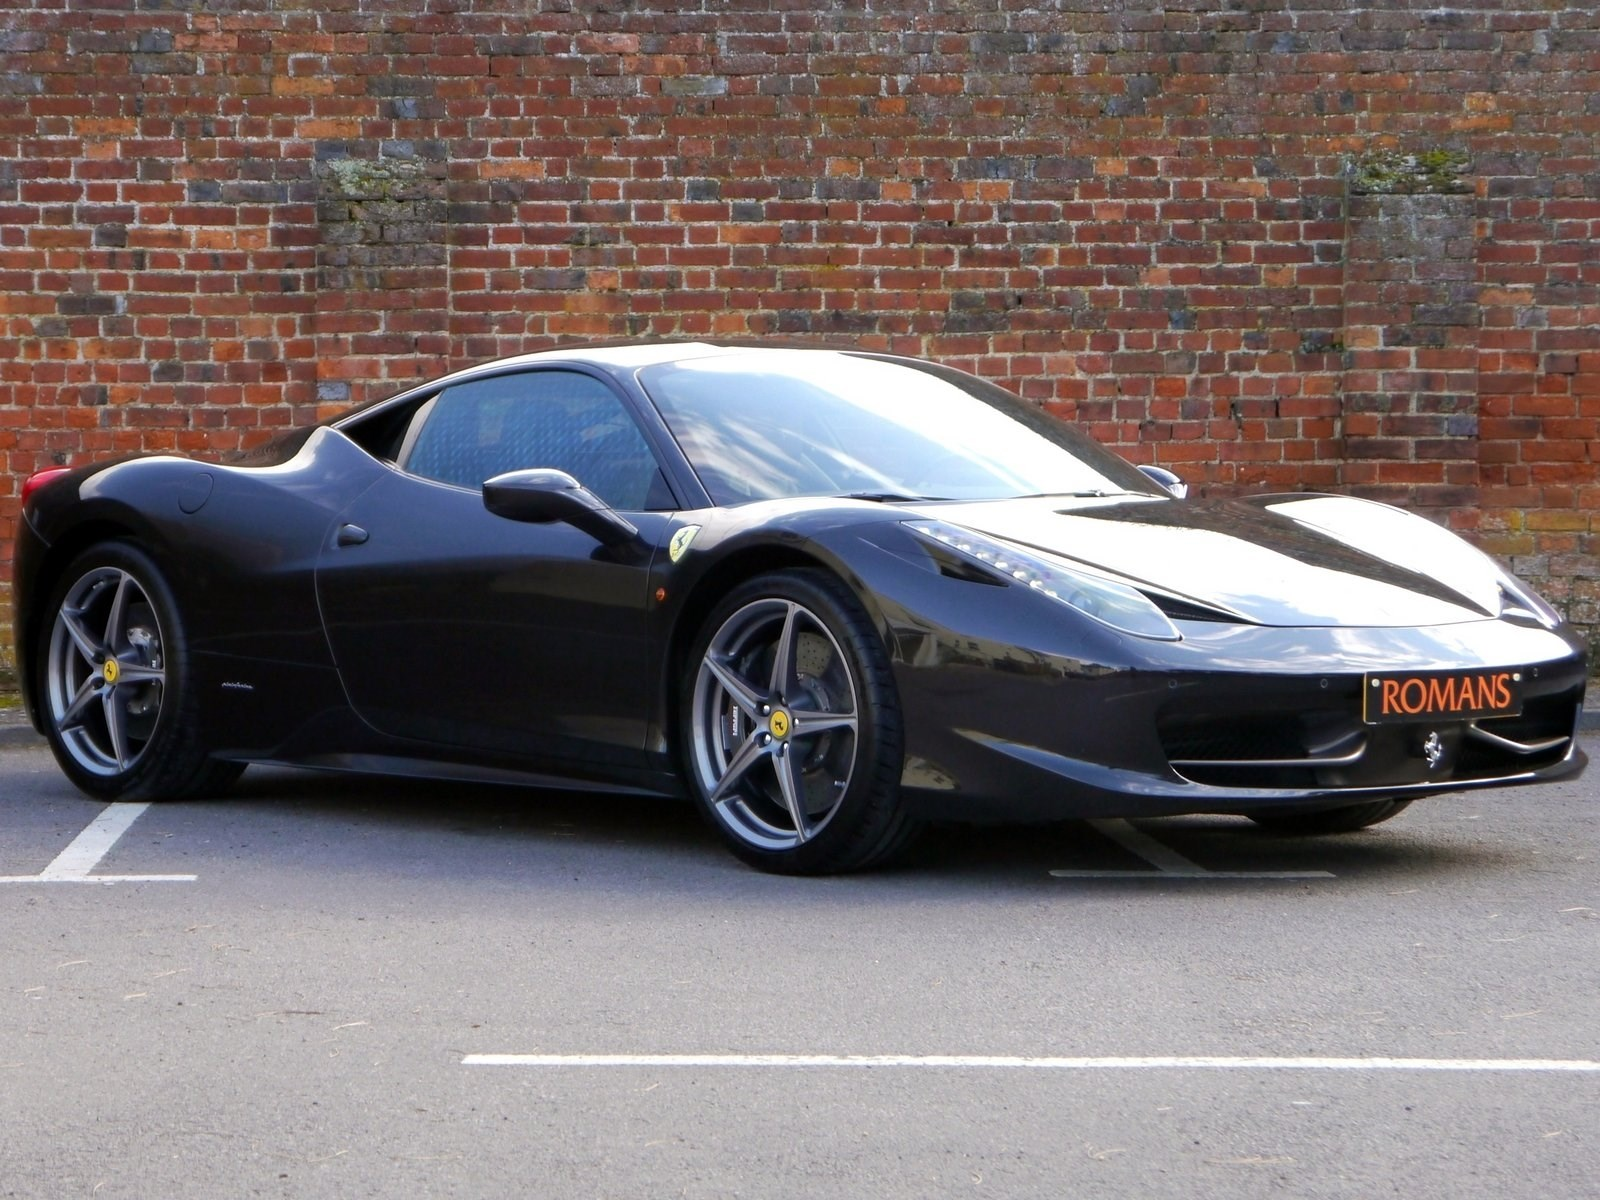 tx pre owned luxury worth cars dallas sale in sports htm fort ferrari near coupe plano for gtb used